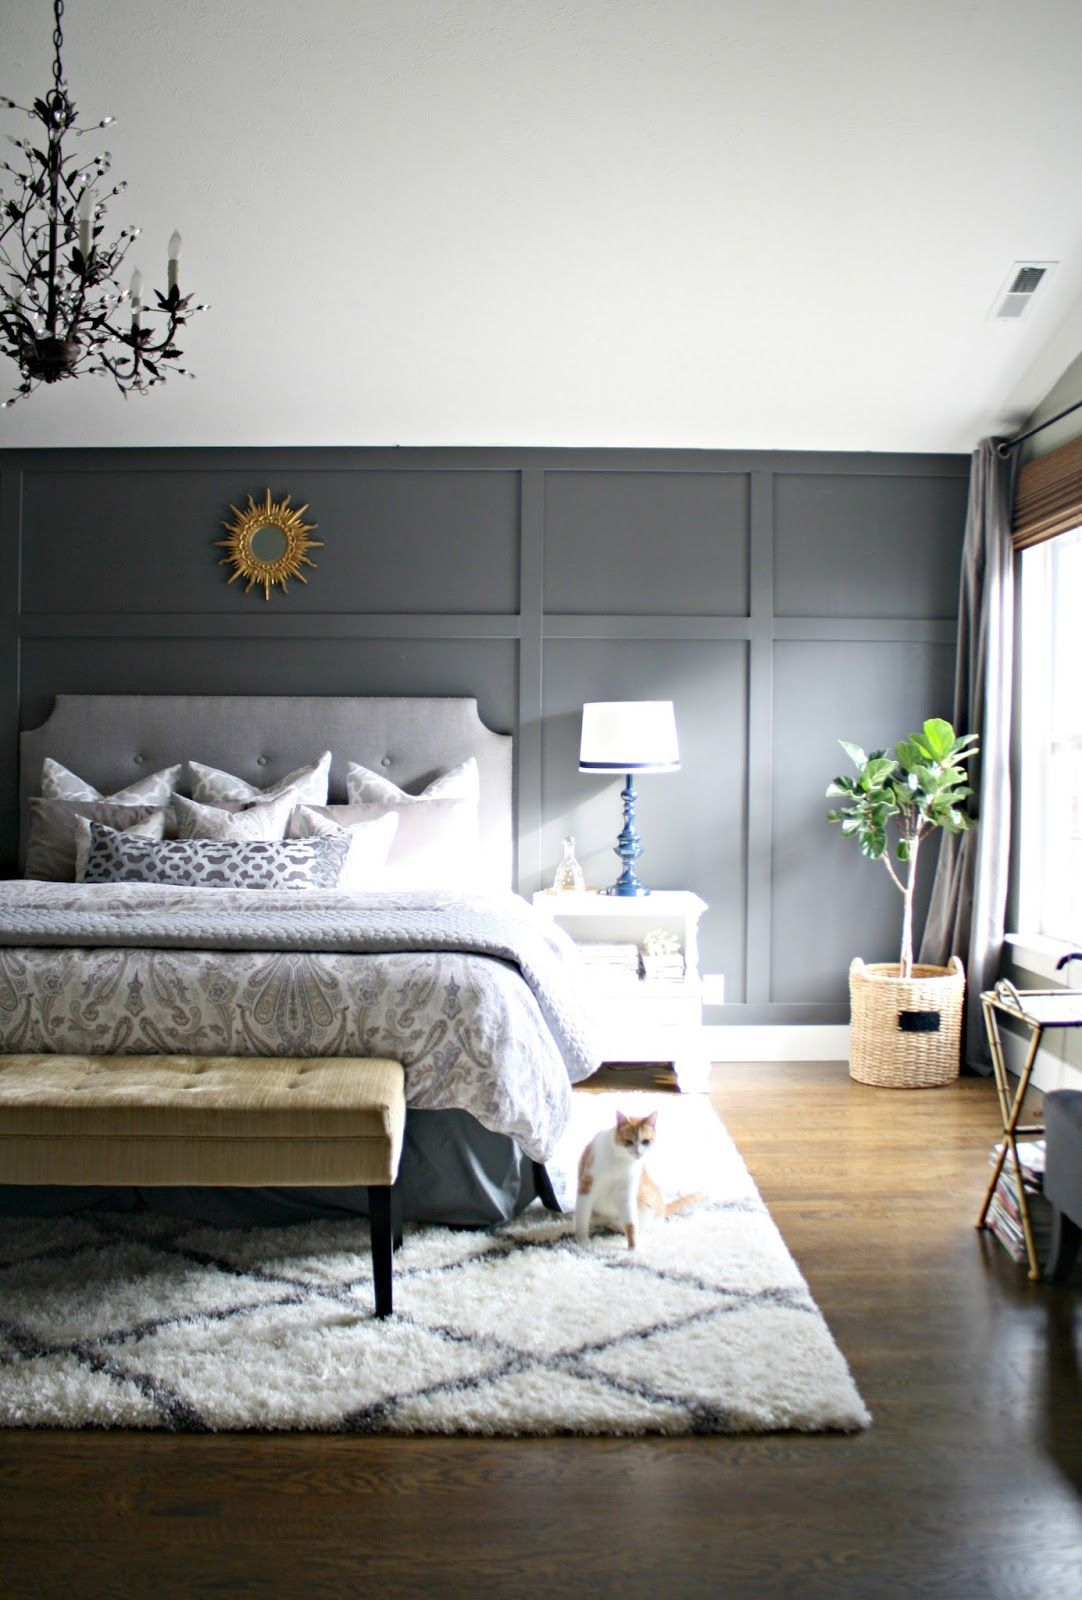 Gaining A Few Extra Inches Cozy Master Bedroom Small Master Bedroom Home Decor Bedroom